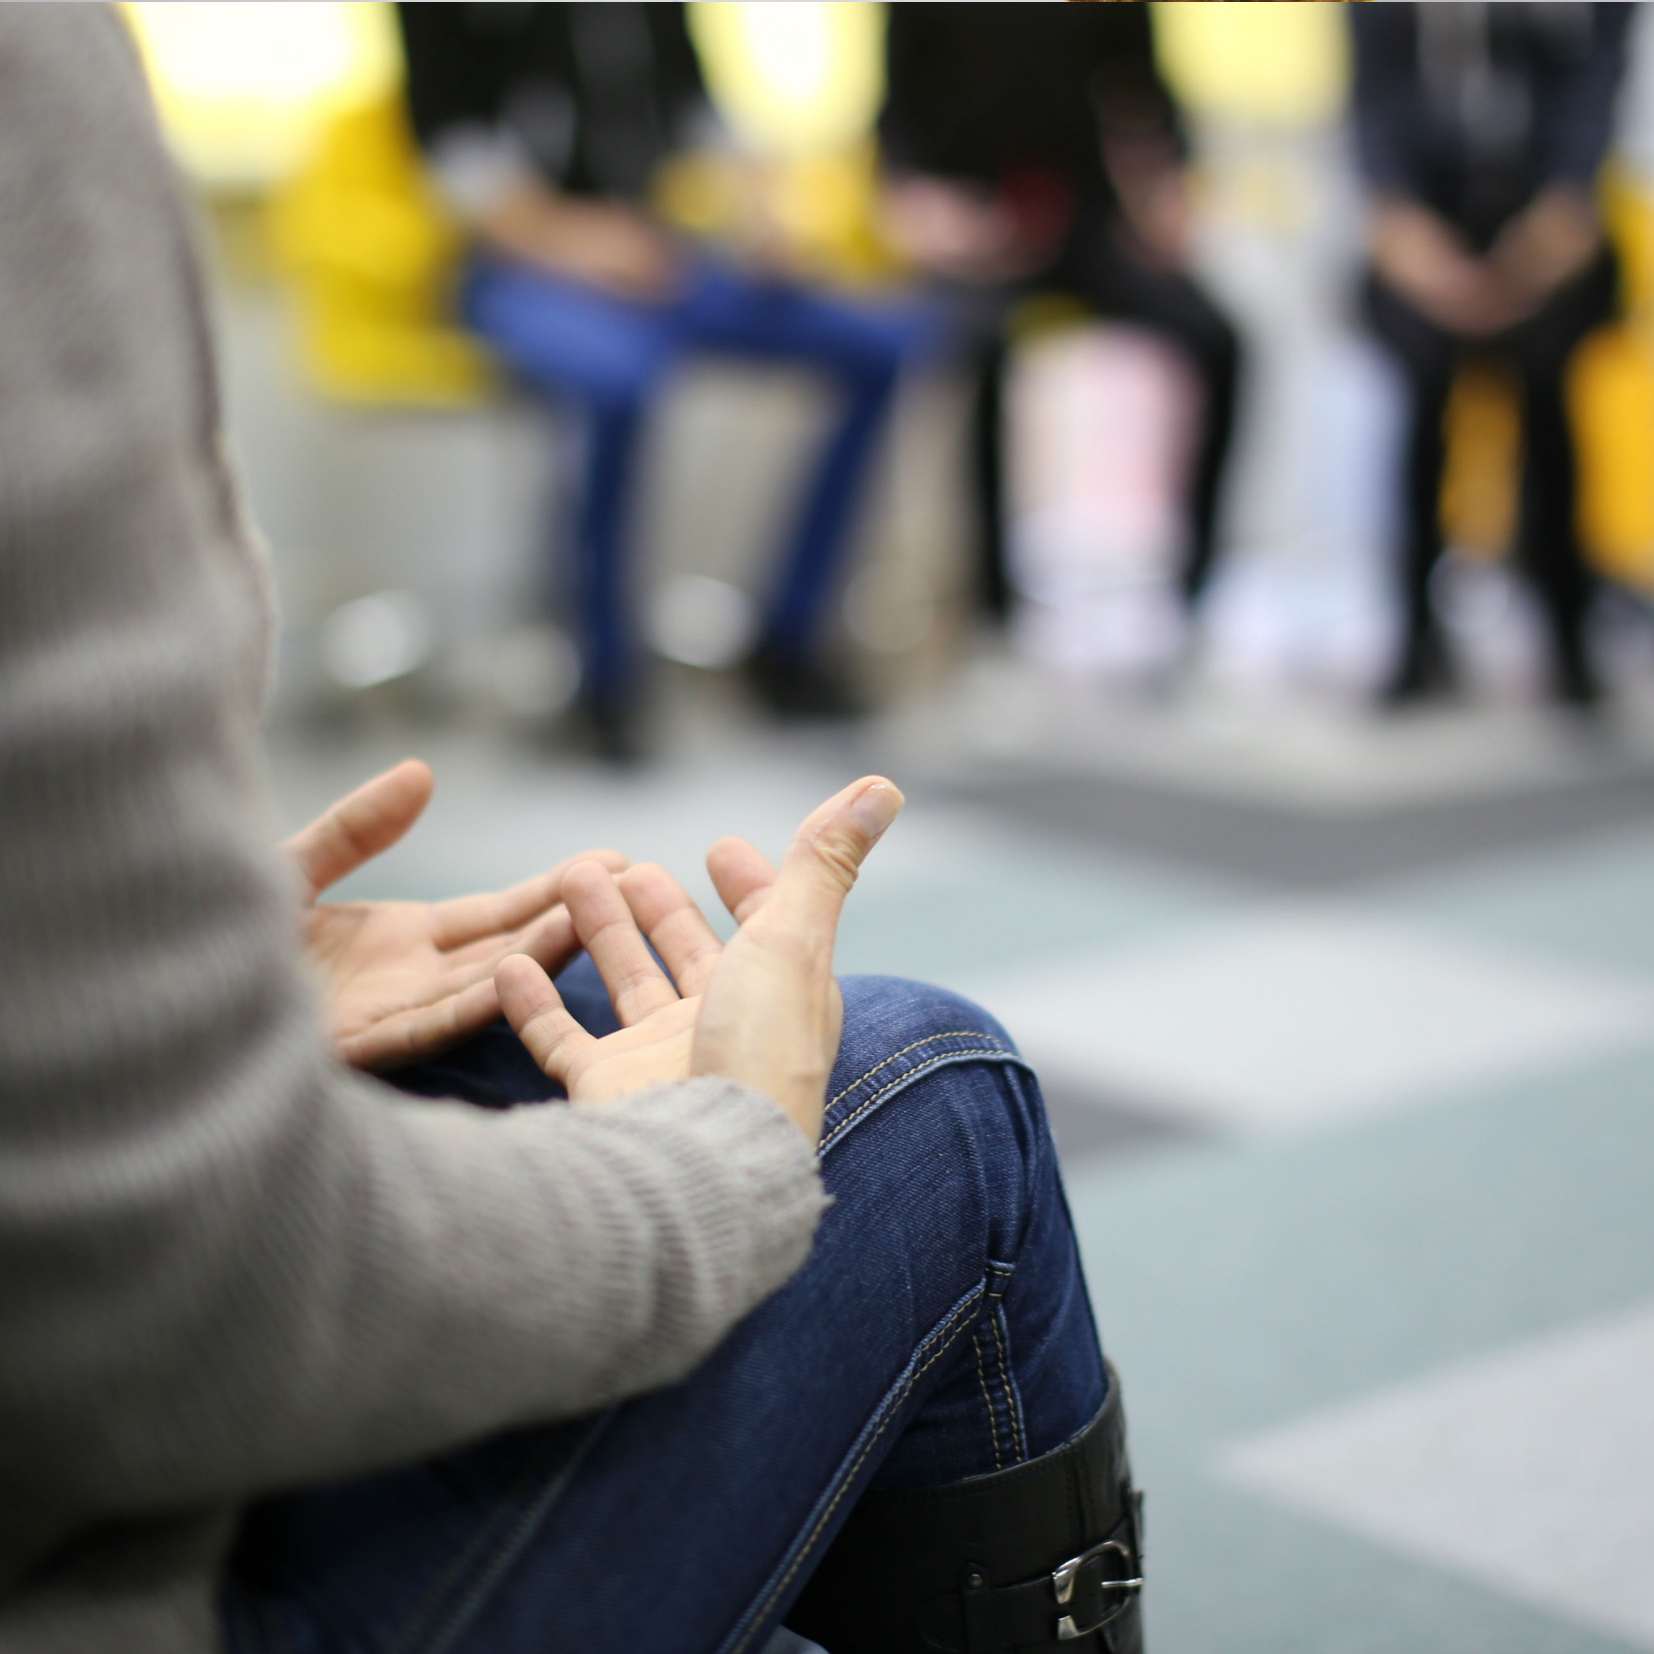 Close up of hands on lap of client in circle depicting Group Services